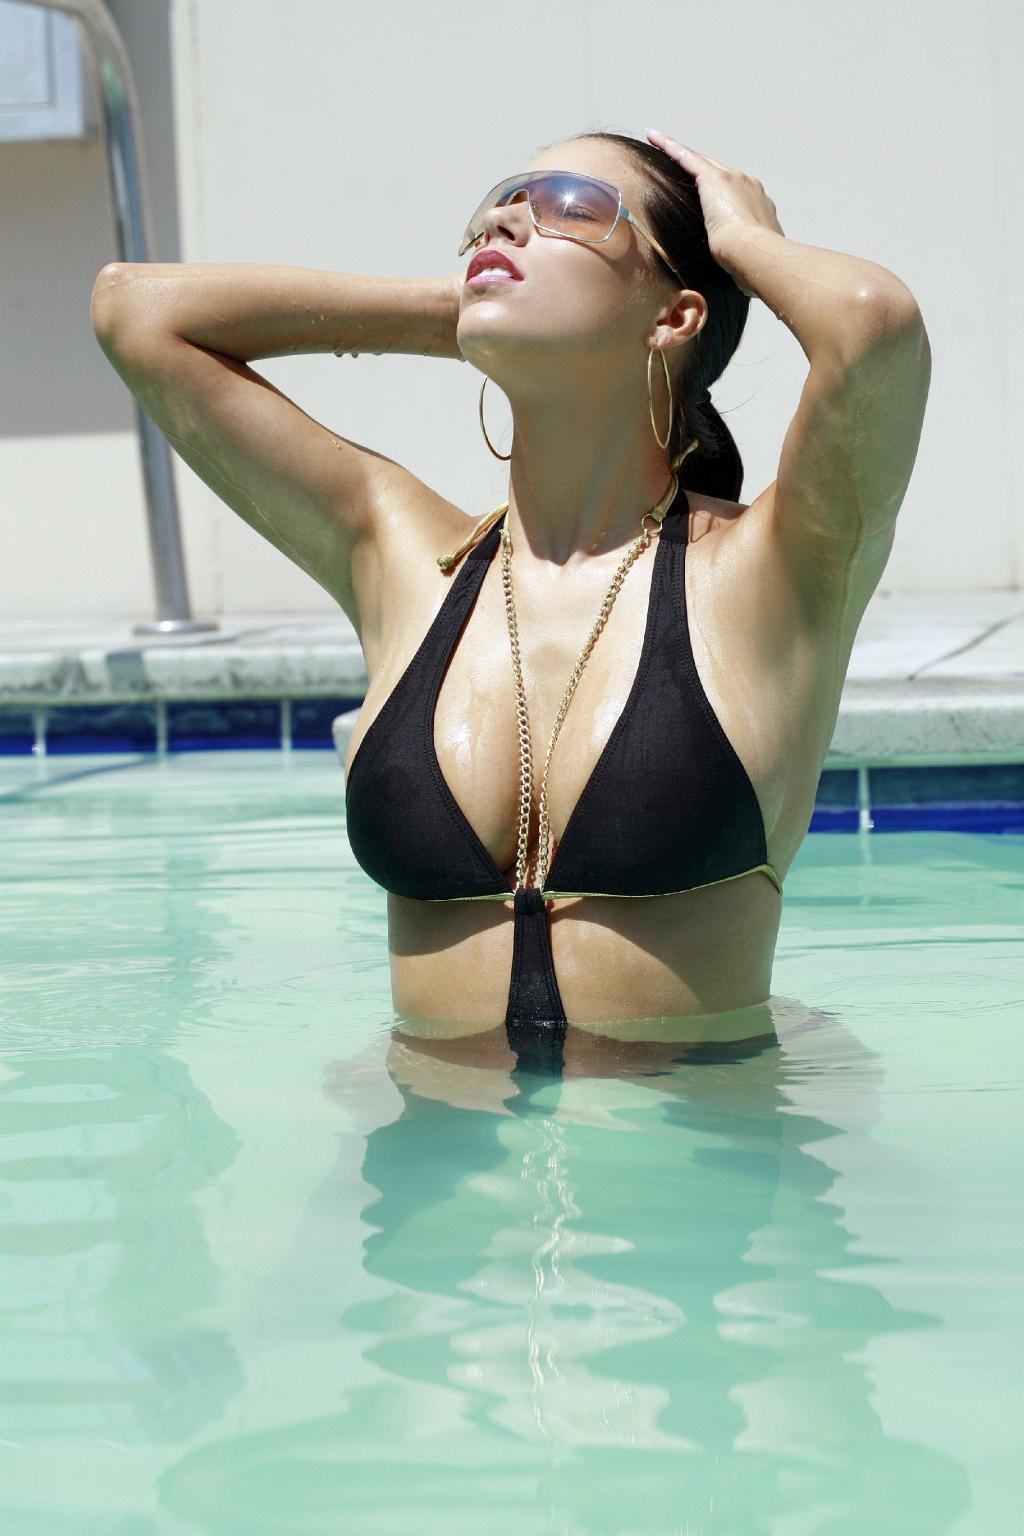 Janine Habeck sexy model gallery